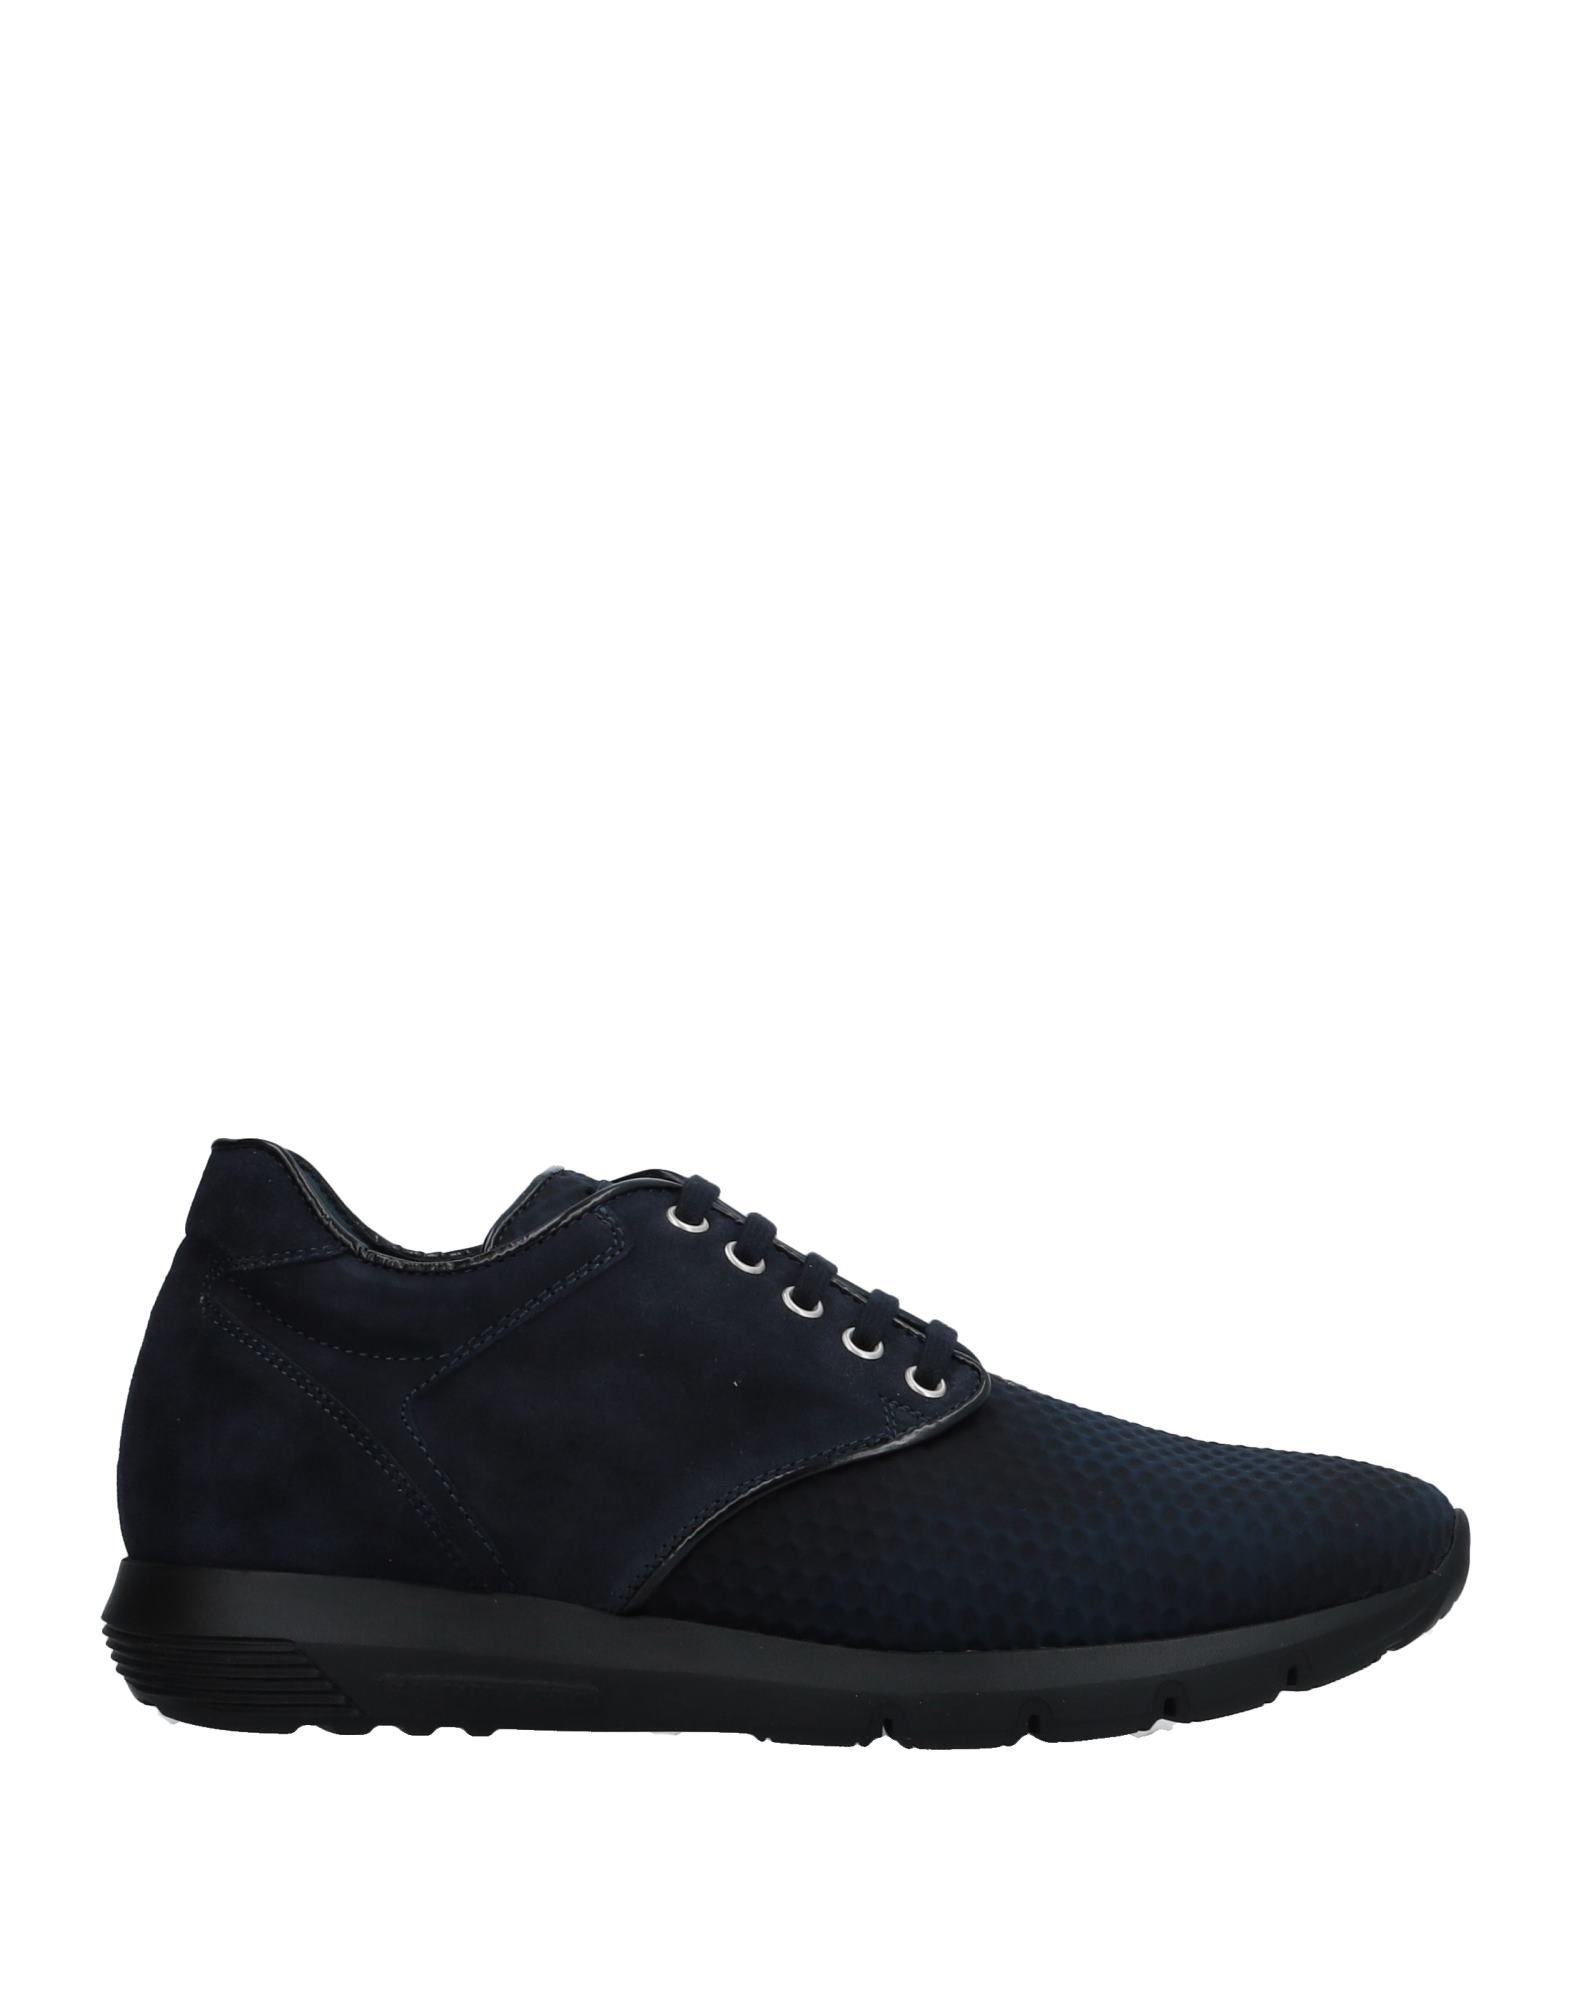 Sneakers Fabiano Ricci Homme - Sneakers Fabiano Ricci  Bleu foncé Chaussures casual sauvages